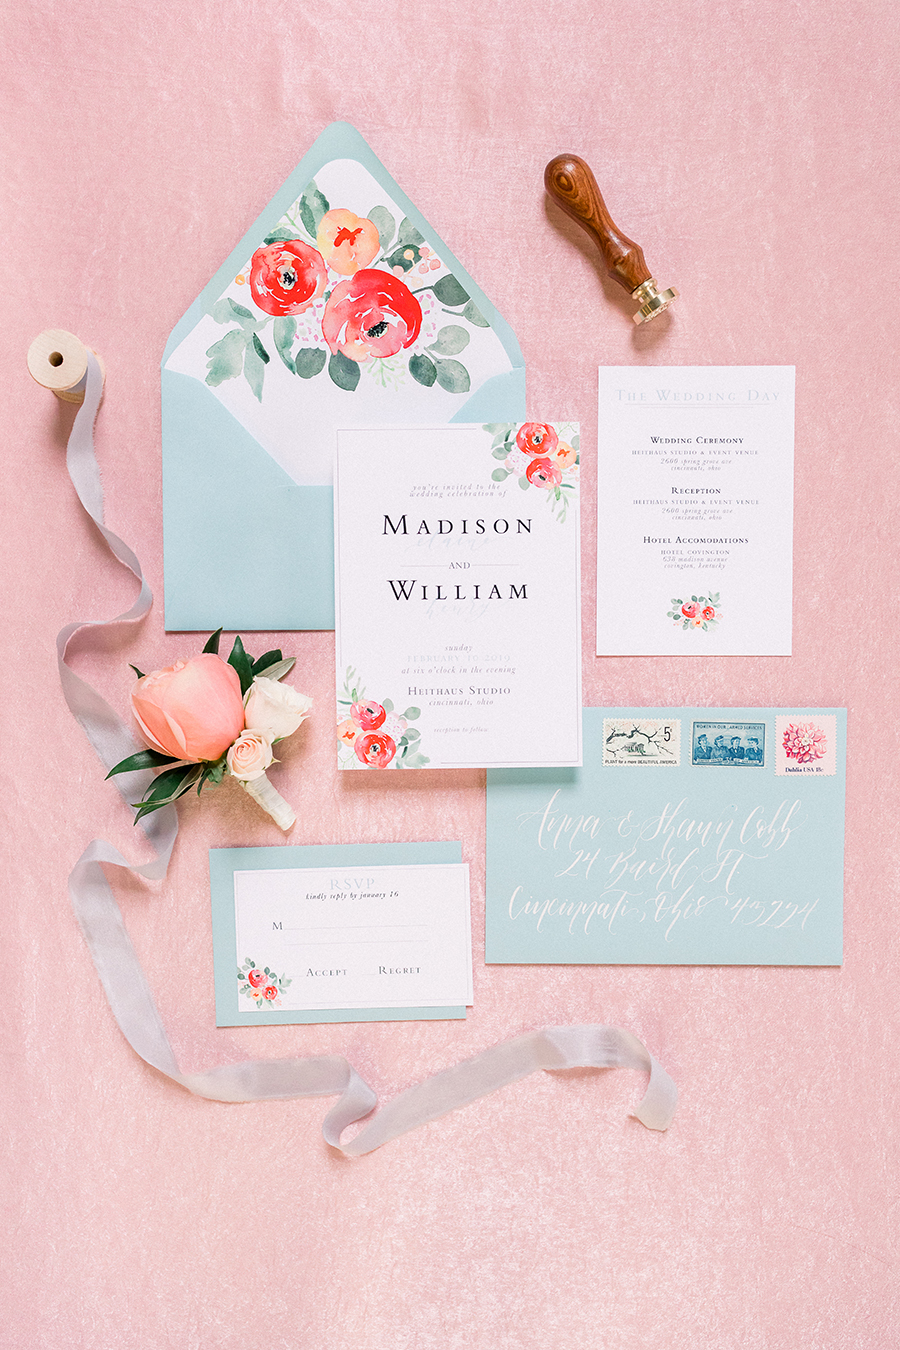 Whimsical Teal and Coral Wedding Ideas via TheELD.com